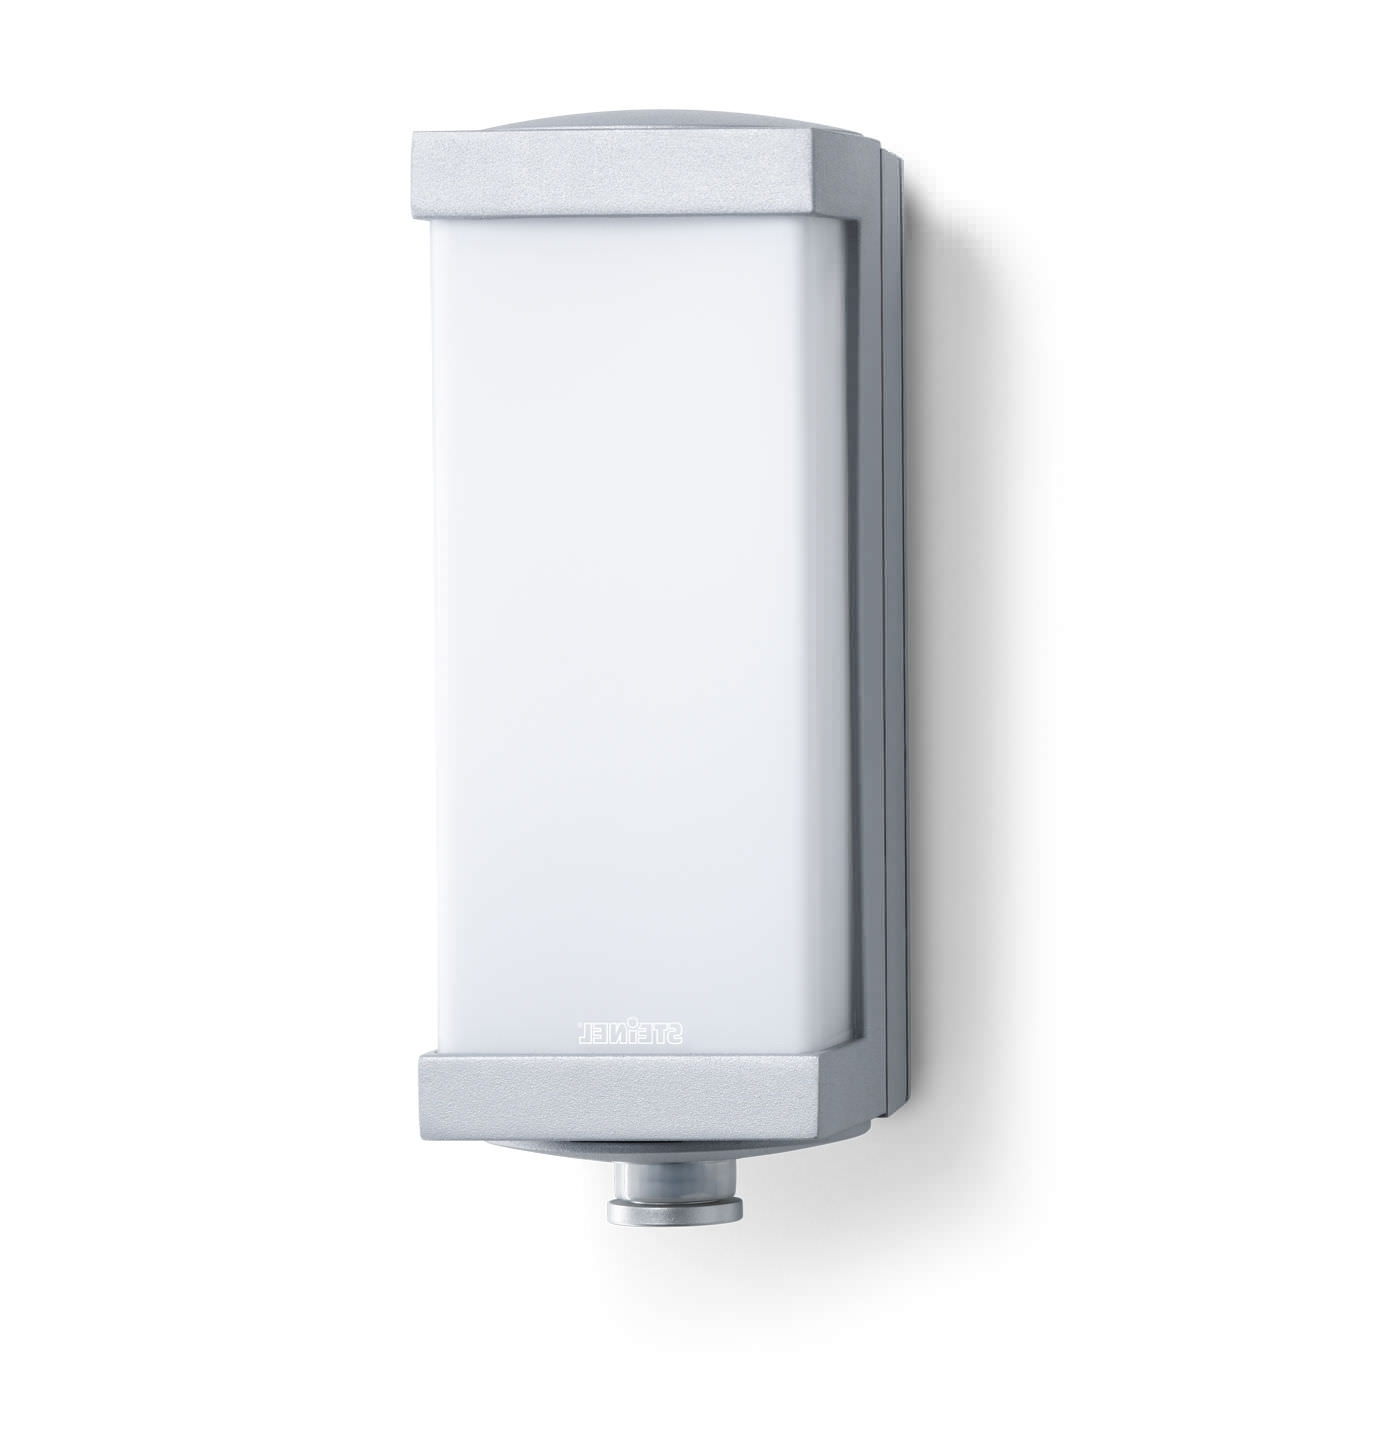 2019 Outdoor Wall Lights With Motion Sensors • Outdoor Lighting With Regard To Outdoor Wall Lighting With Motion Activated (View 2 of 20)